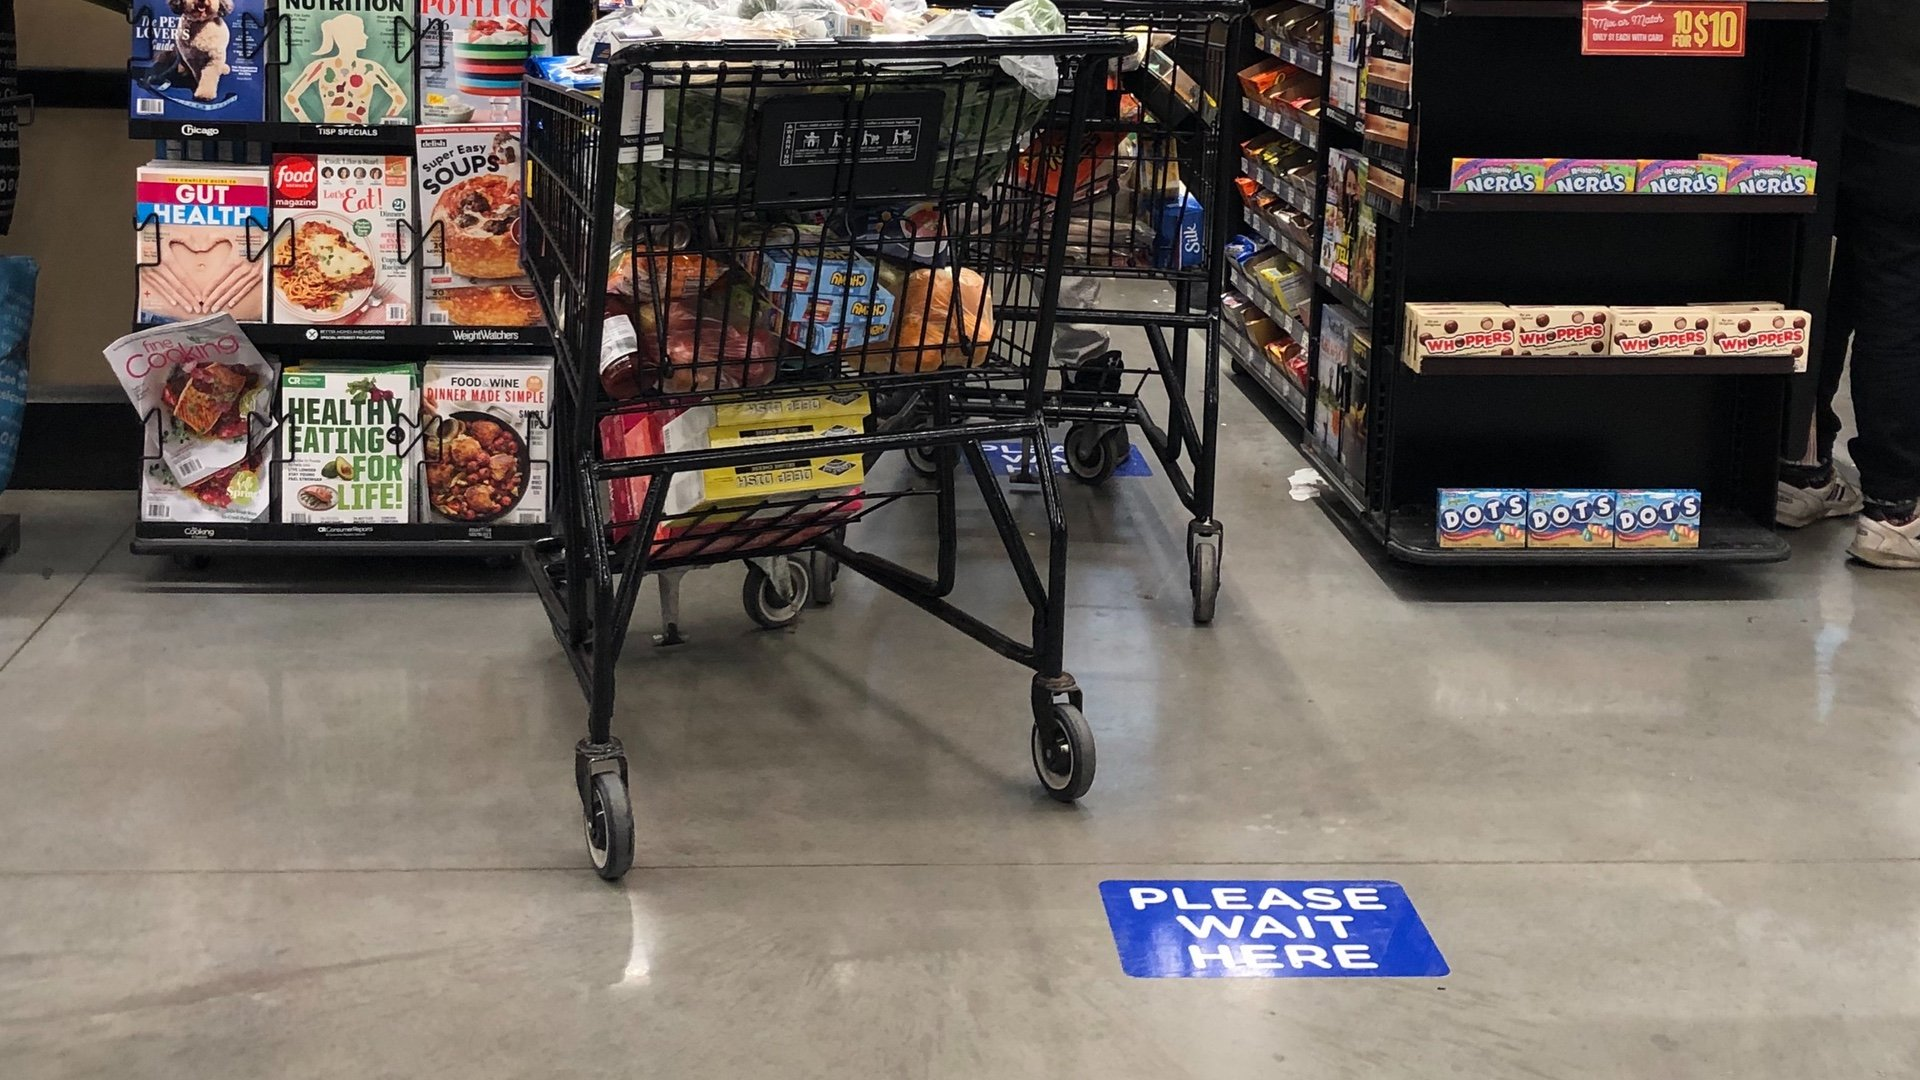 Best practices at grocery stores include social distancing markers in checkout lines. (Patty Wetli / WTTW)